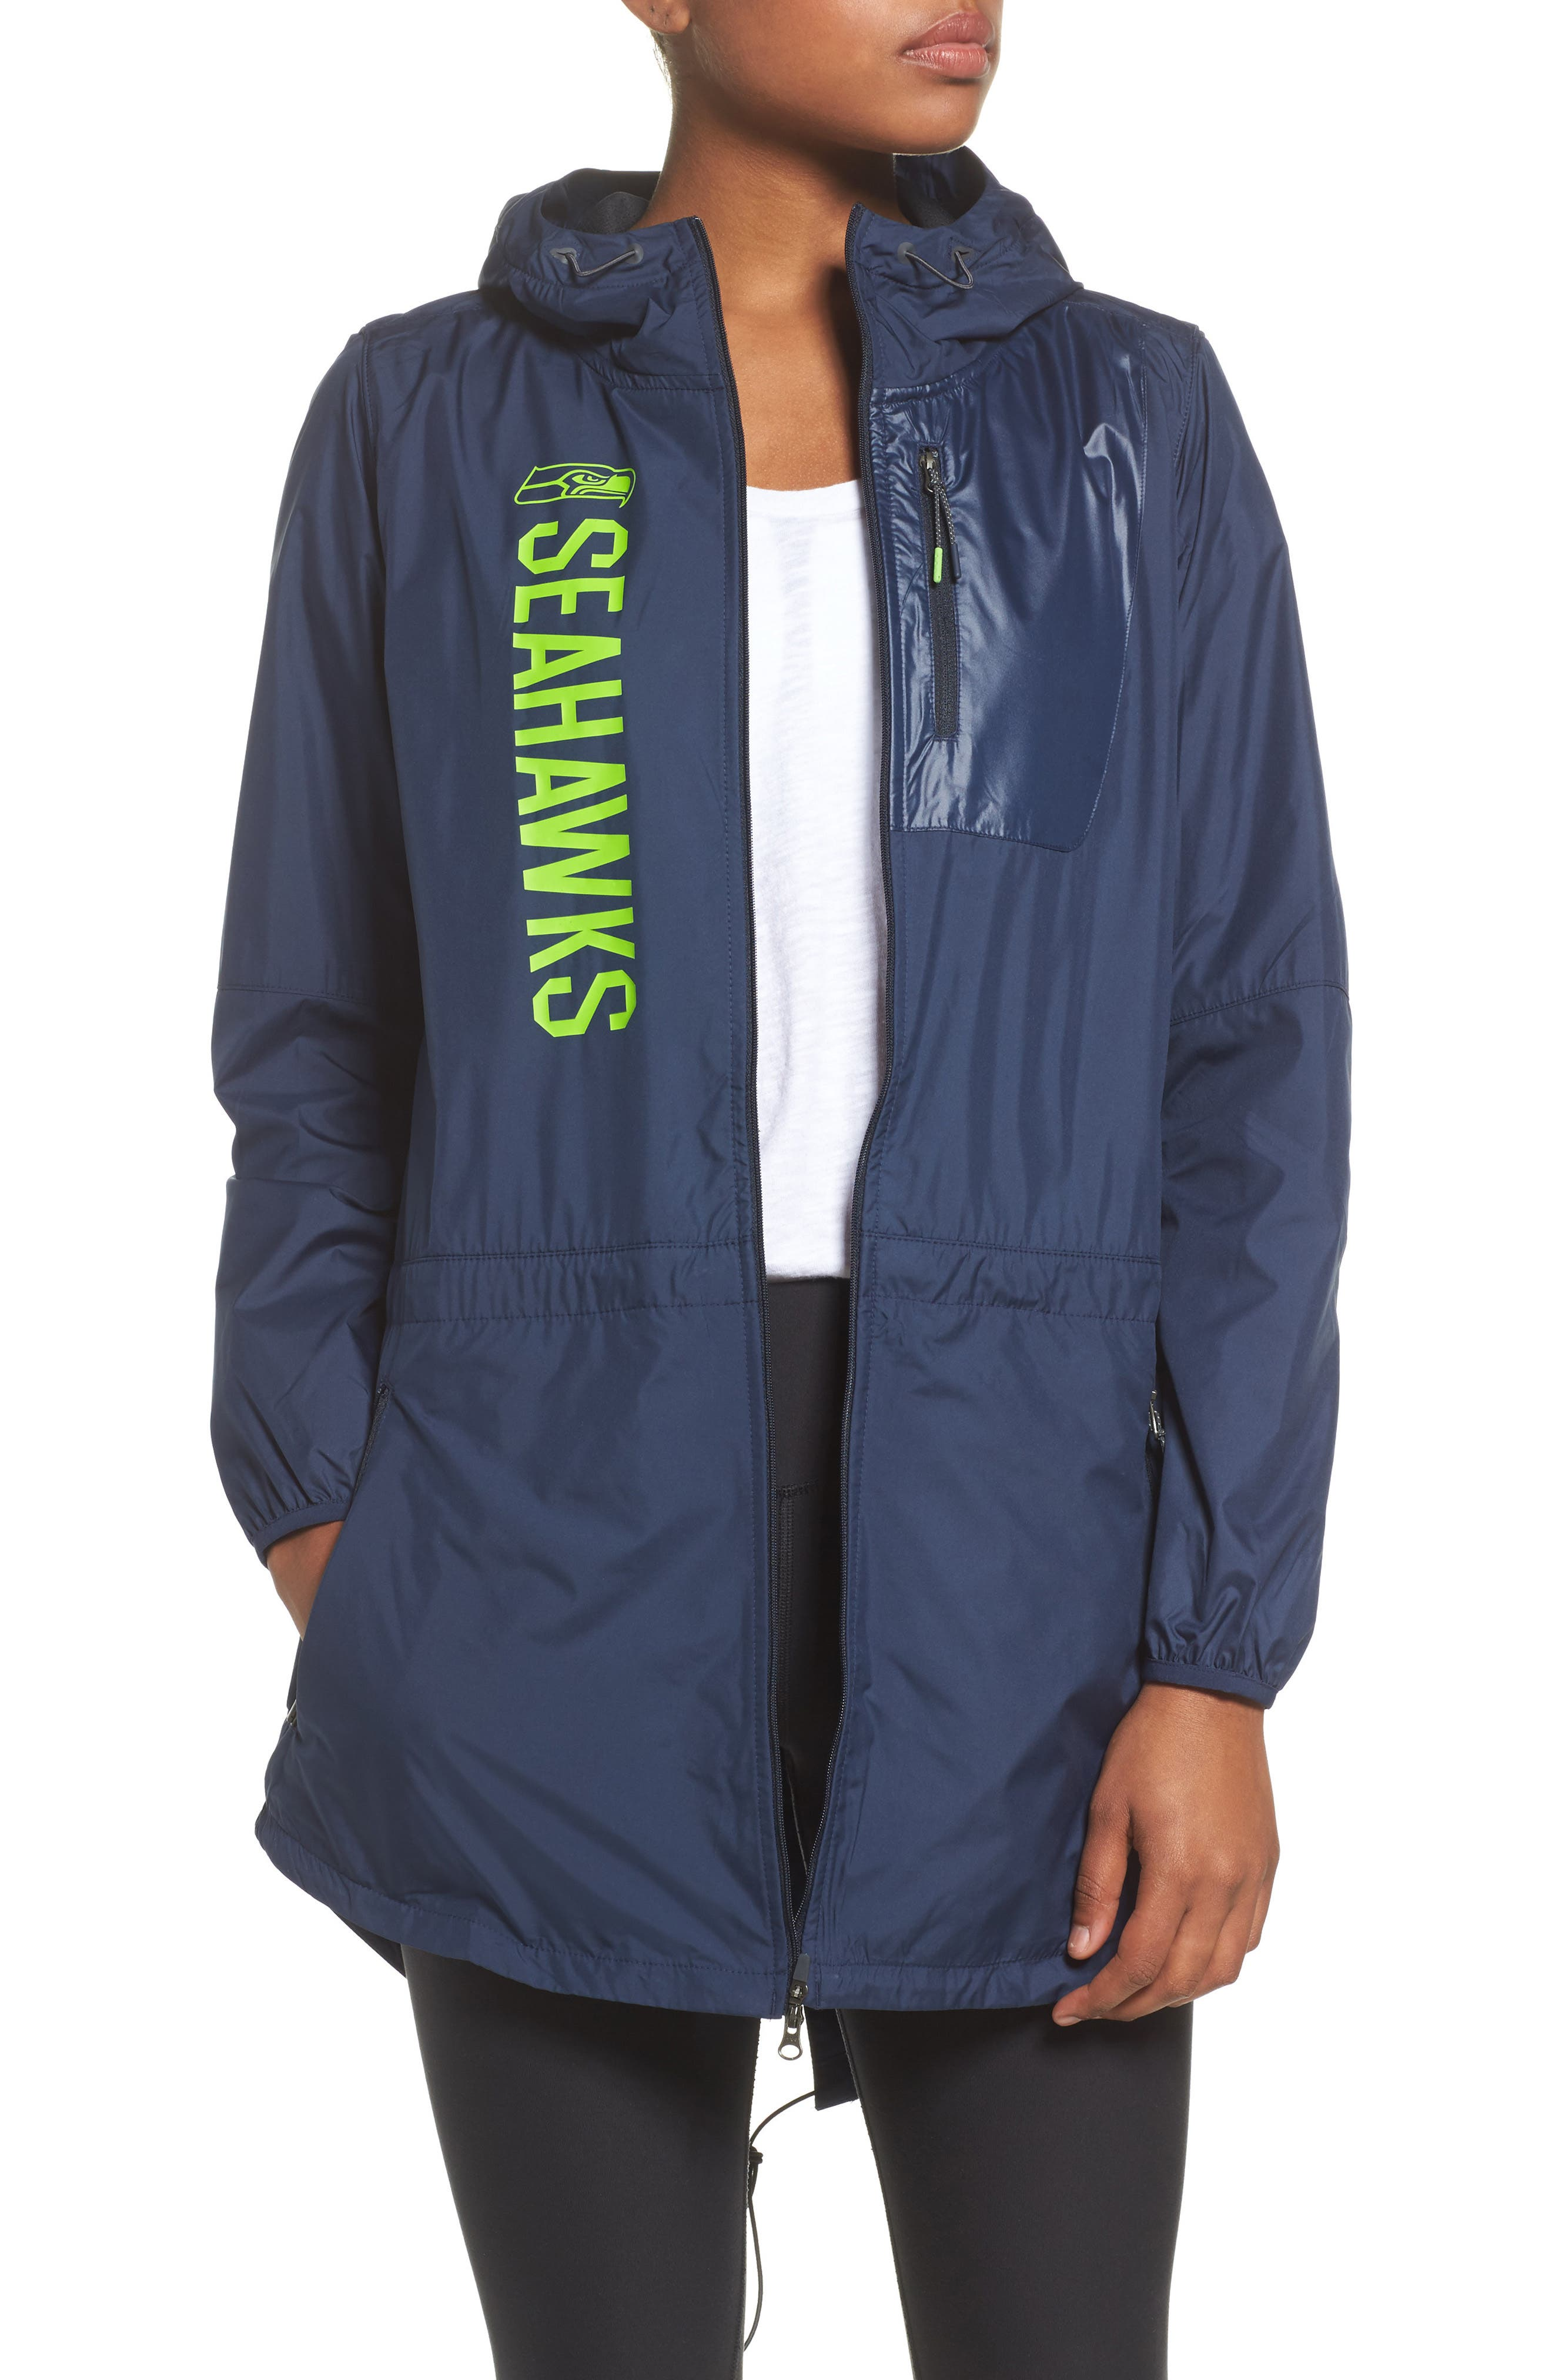 NFL Packable Water Resistant Jacket,                         Main,                         color, College Navy/ Seahawks